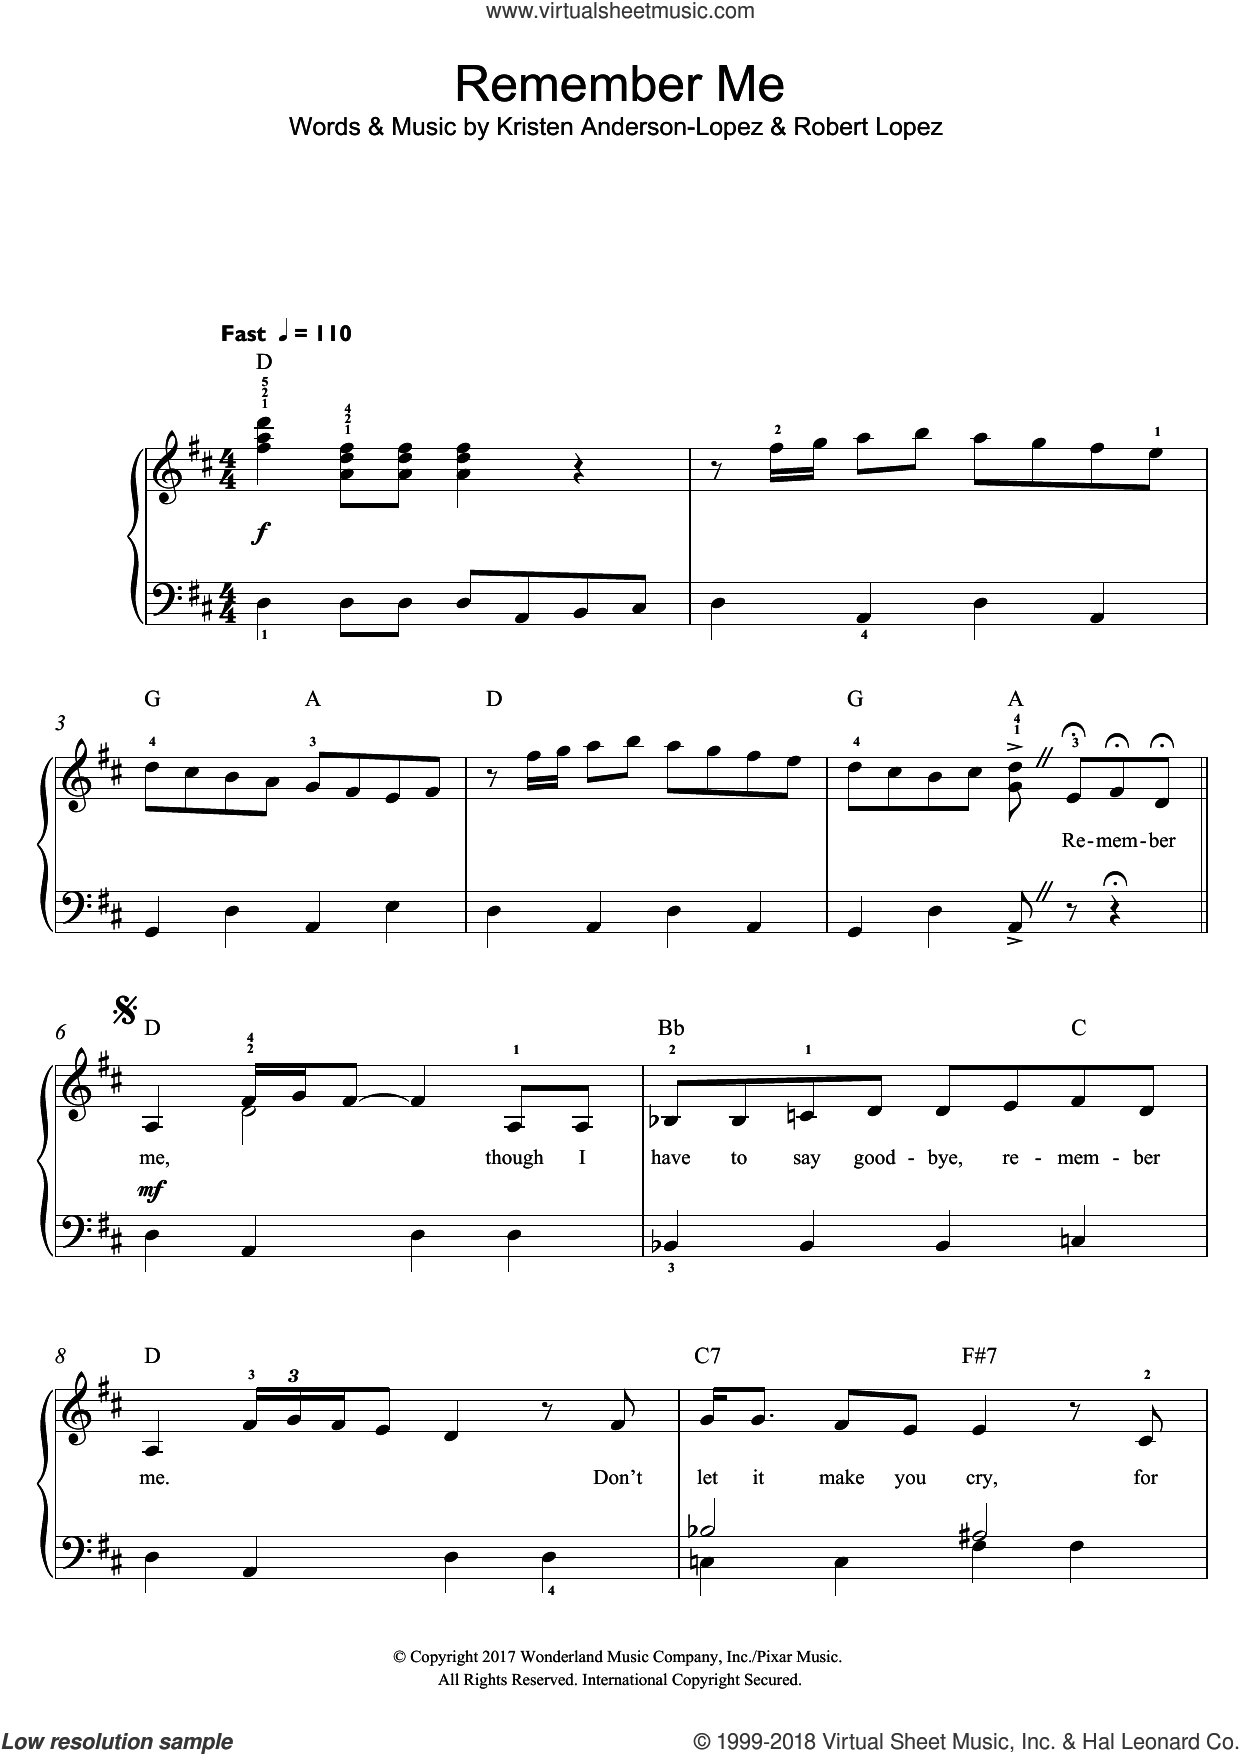 Remember Me (Ernesto de la Cruz) (from Coco) sheet music for piano solo (beginners) by Kristen Anderson-Lopez, Kristen Anderson-Lopez & Robert Lopez and Robert Lopez, beginner piano (beginners)